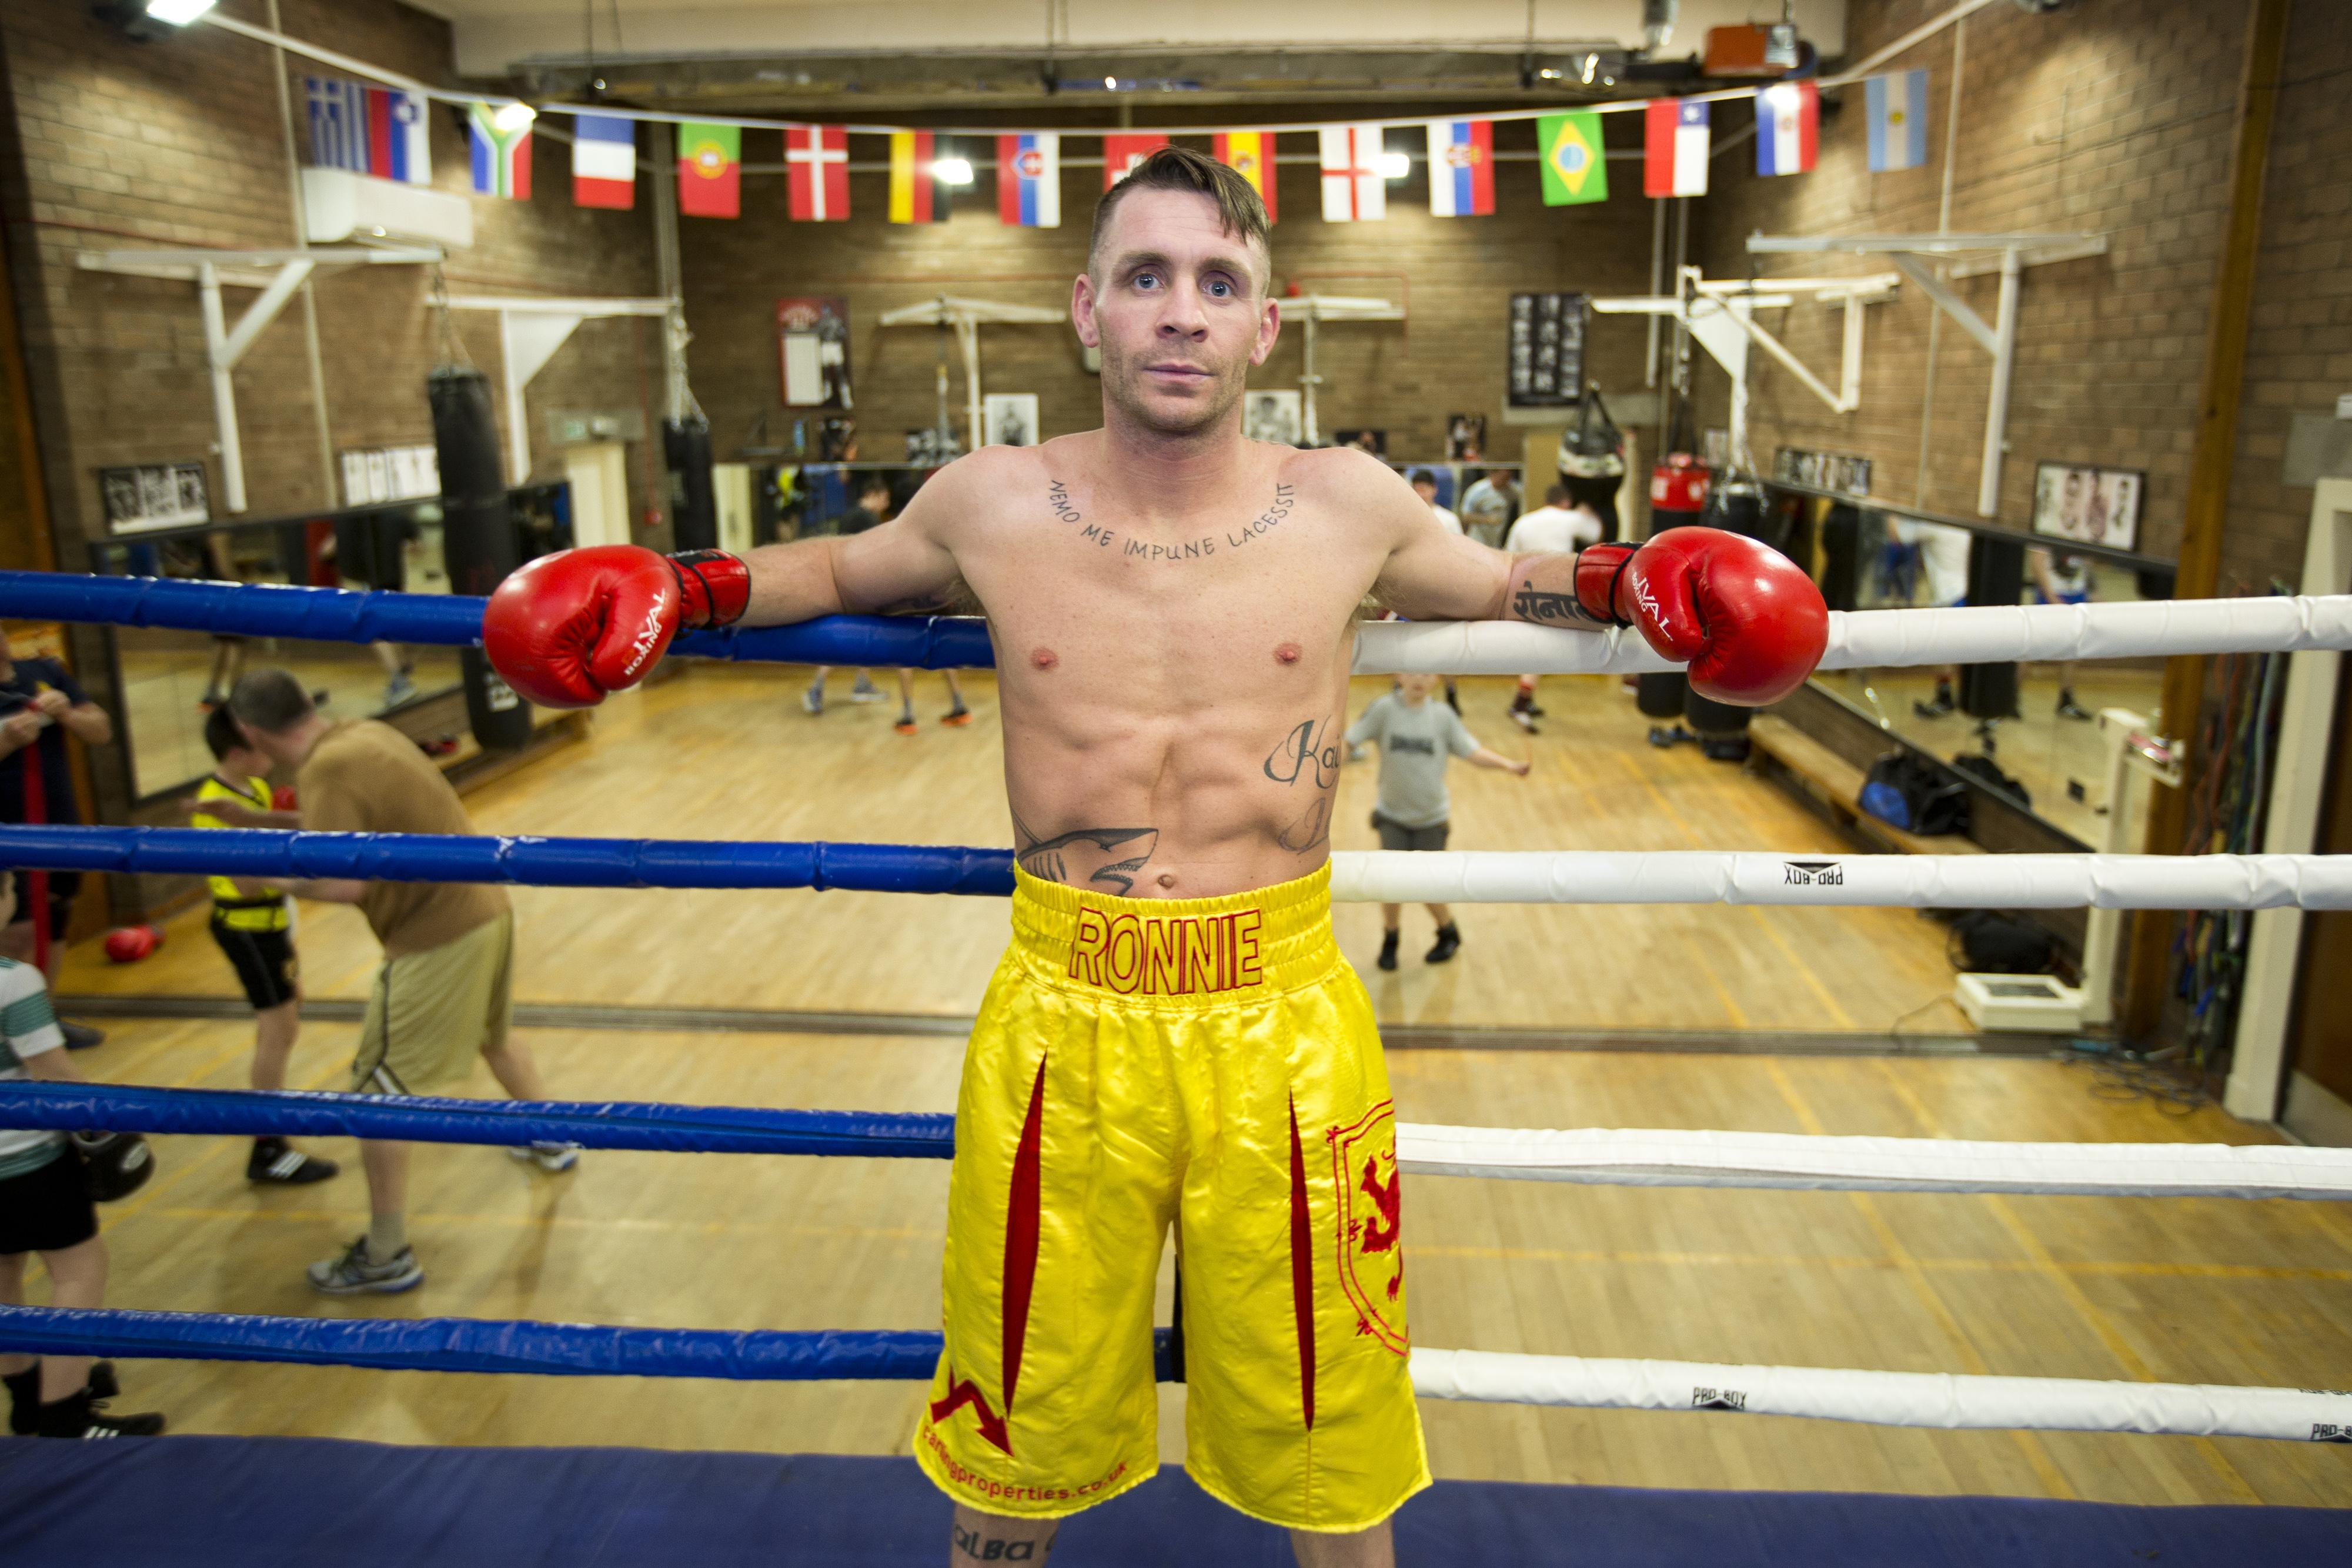 Clark turned professional in 2011 and has 21 wins out of 27 bouts